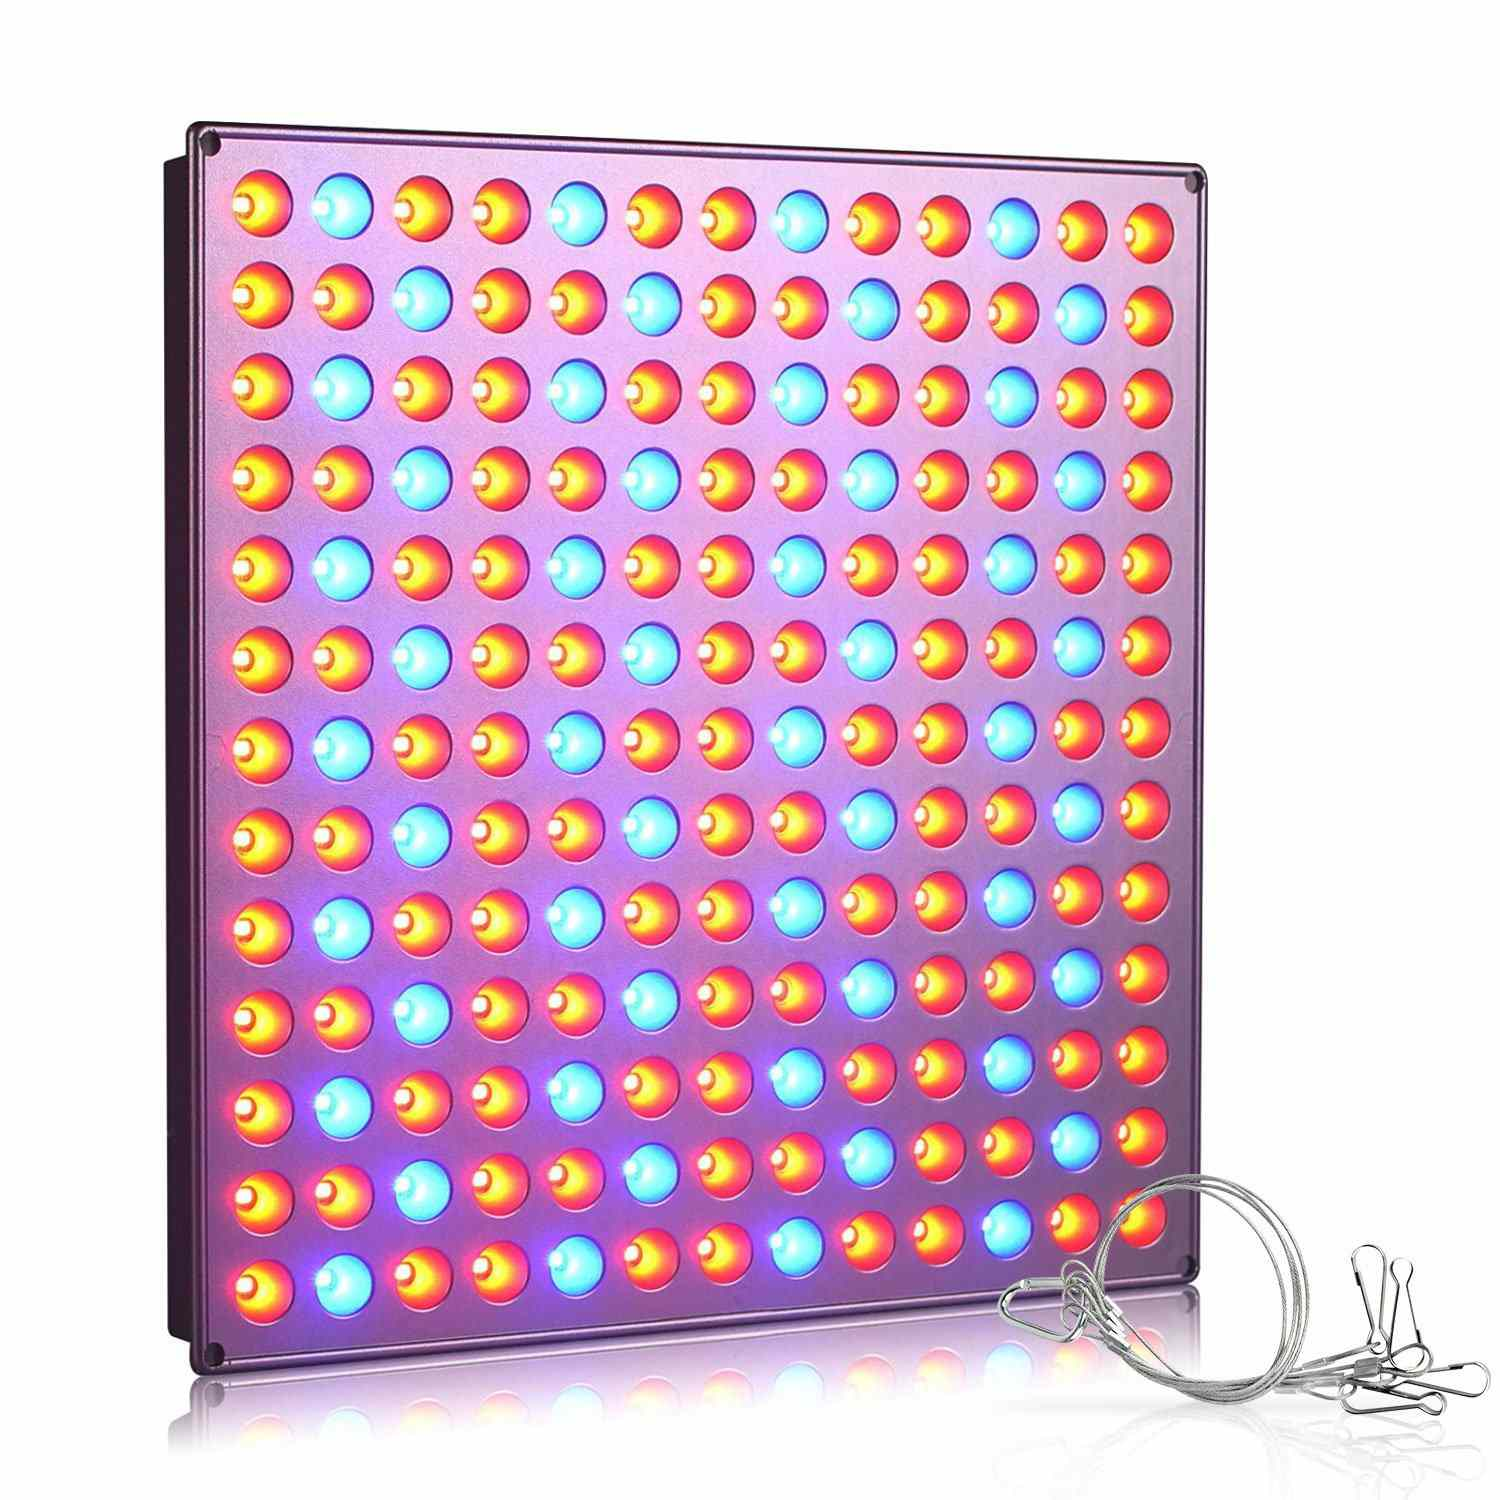 Roleadro LED Grow Light, 75W Full Spectrum Grow Lights for Indoor Plants, Plant Light with IR & UV